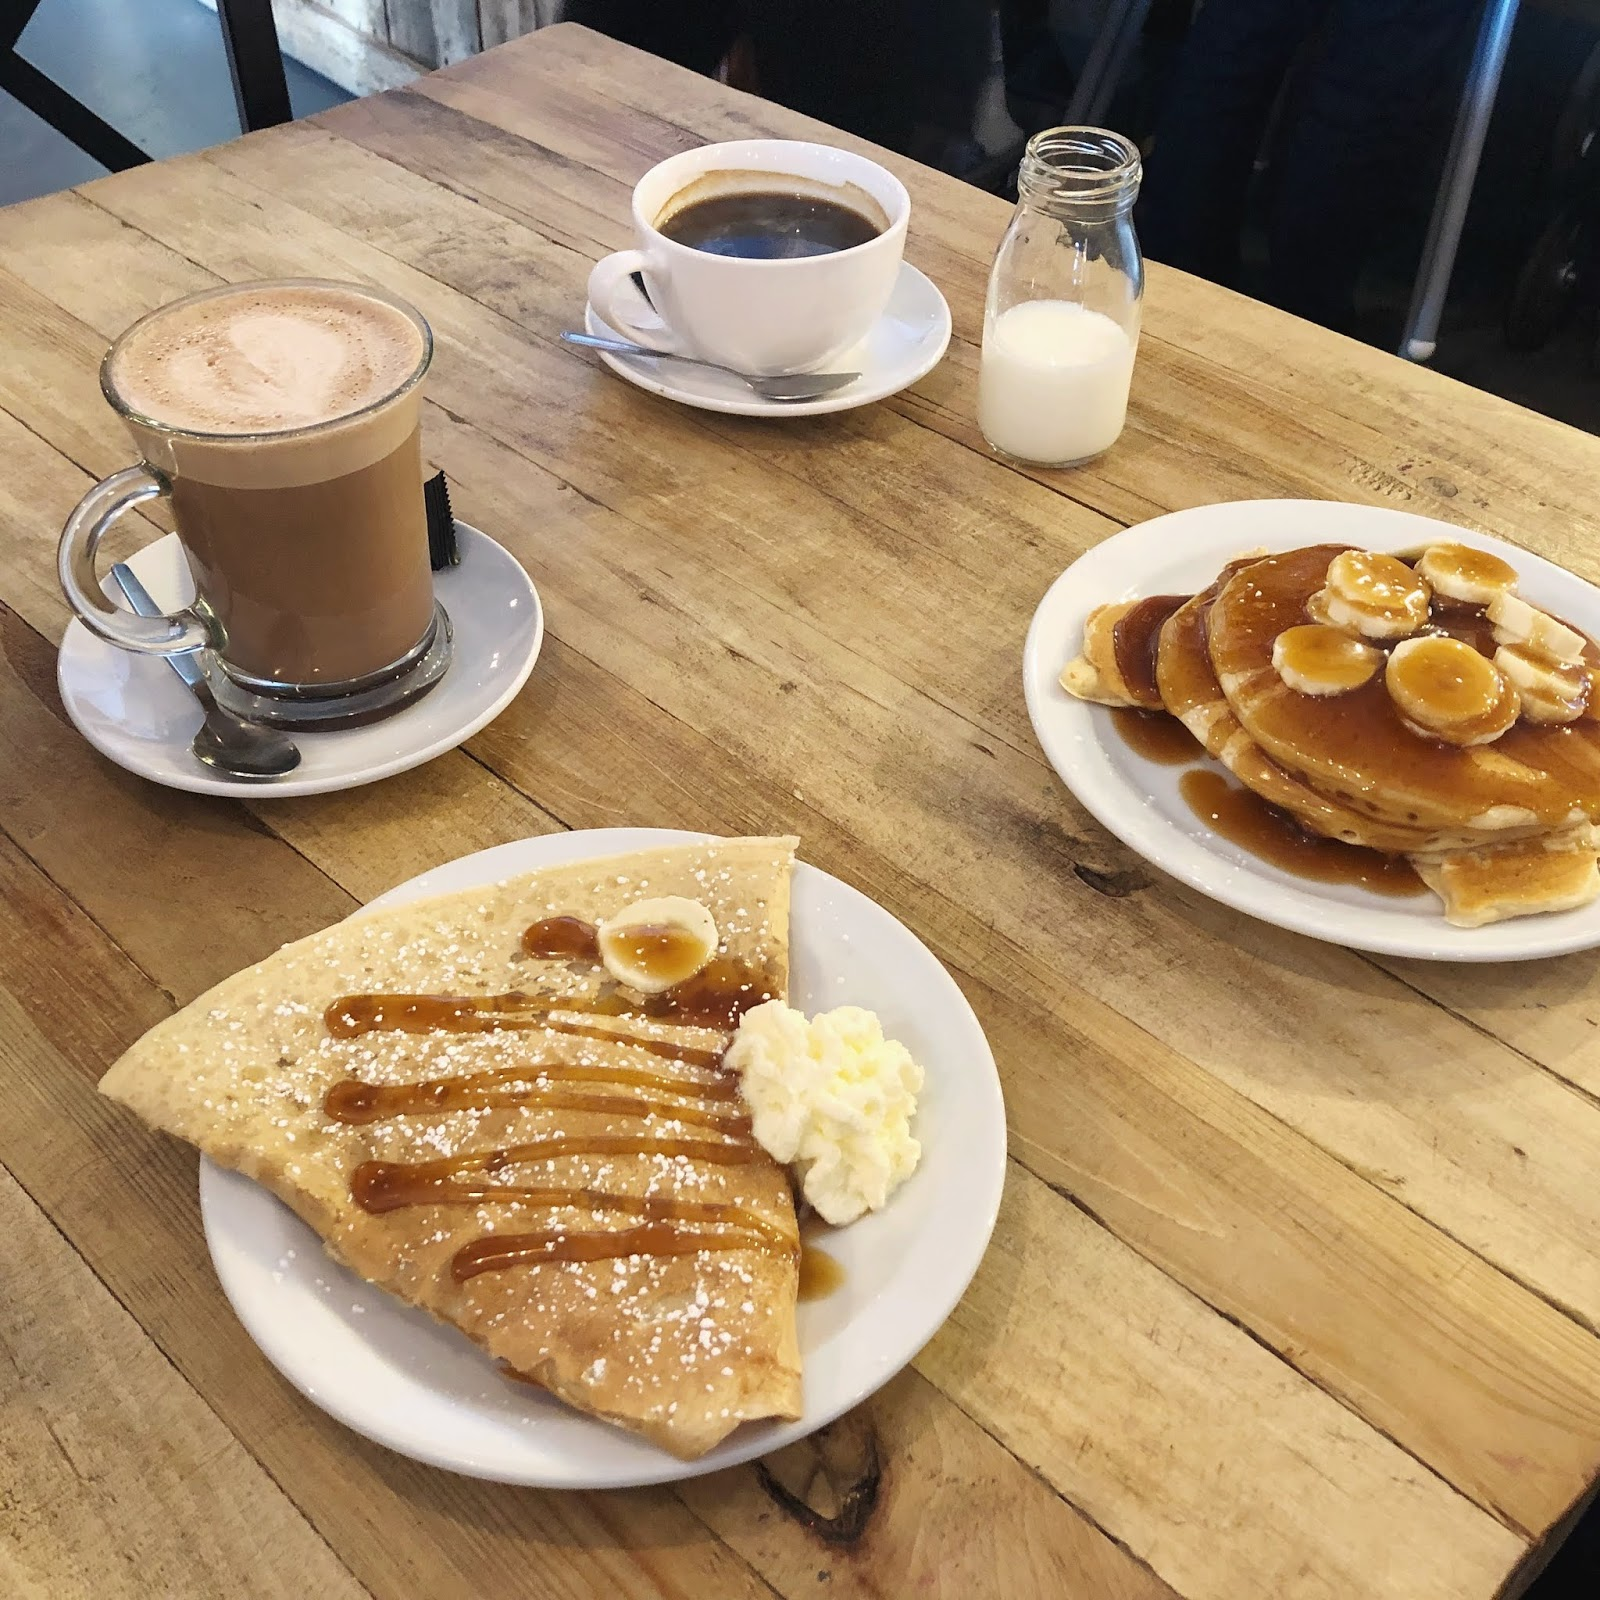 The Best Breakfasts in Newcastle - Monsieur Crepe Cafe